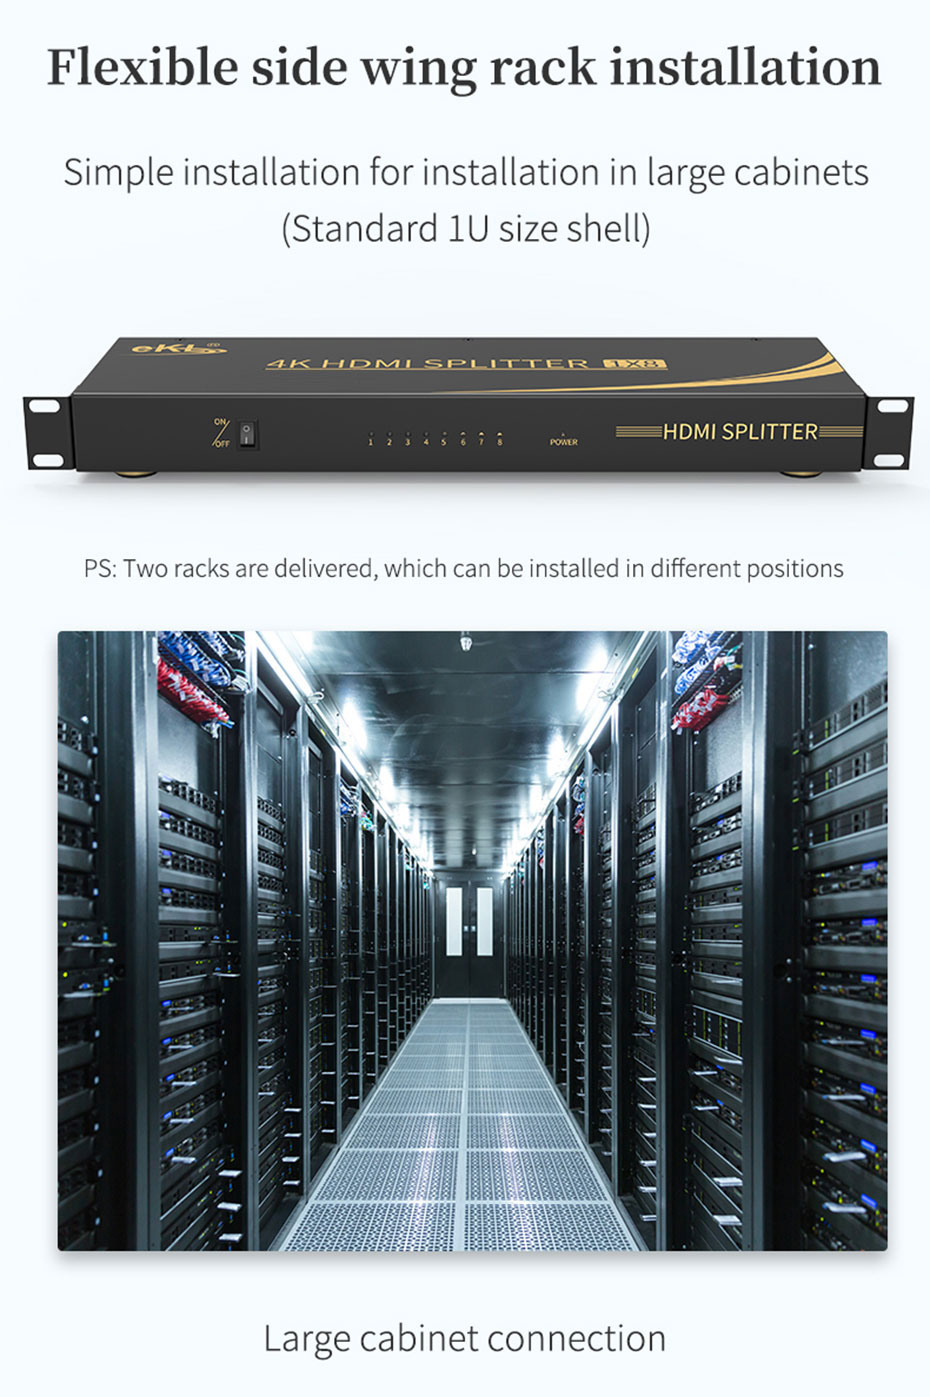 HDMI2.0 splitter UH08R supports rack installation in large cabinets